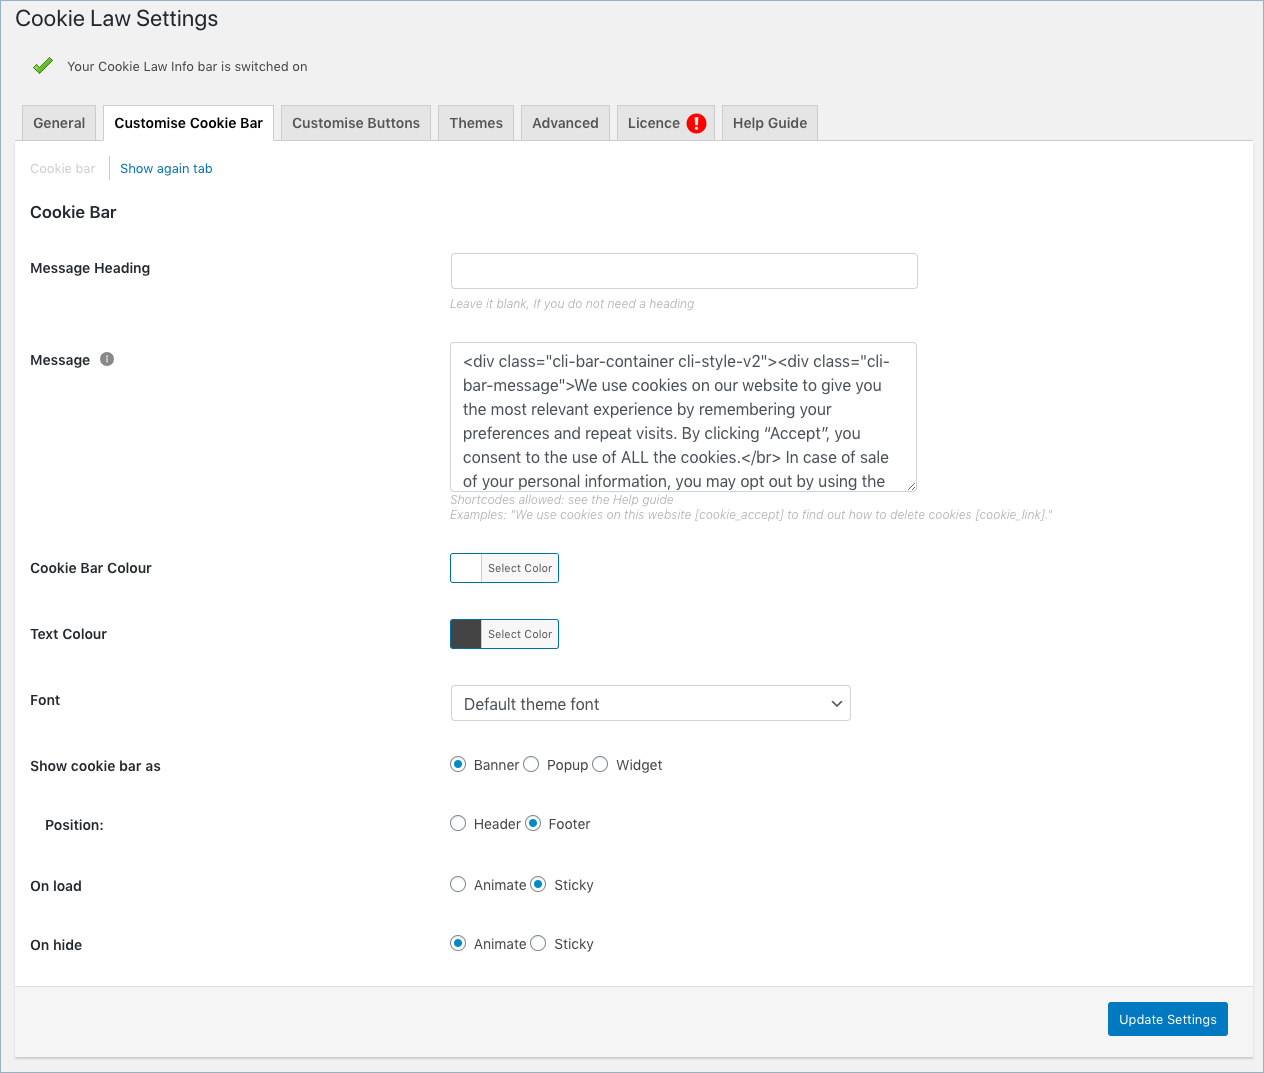 GDPR&CCPA-Cookie Law Settings-Customise Cookie Bar